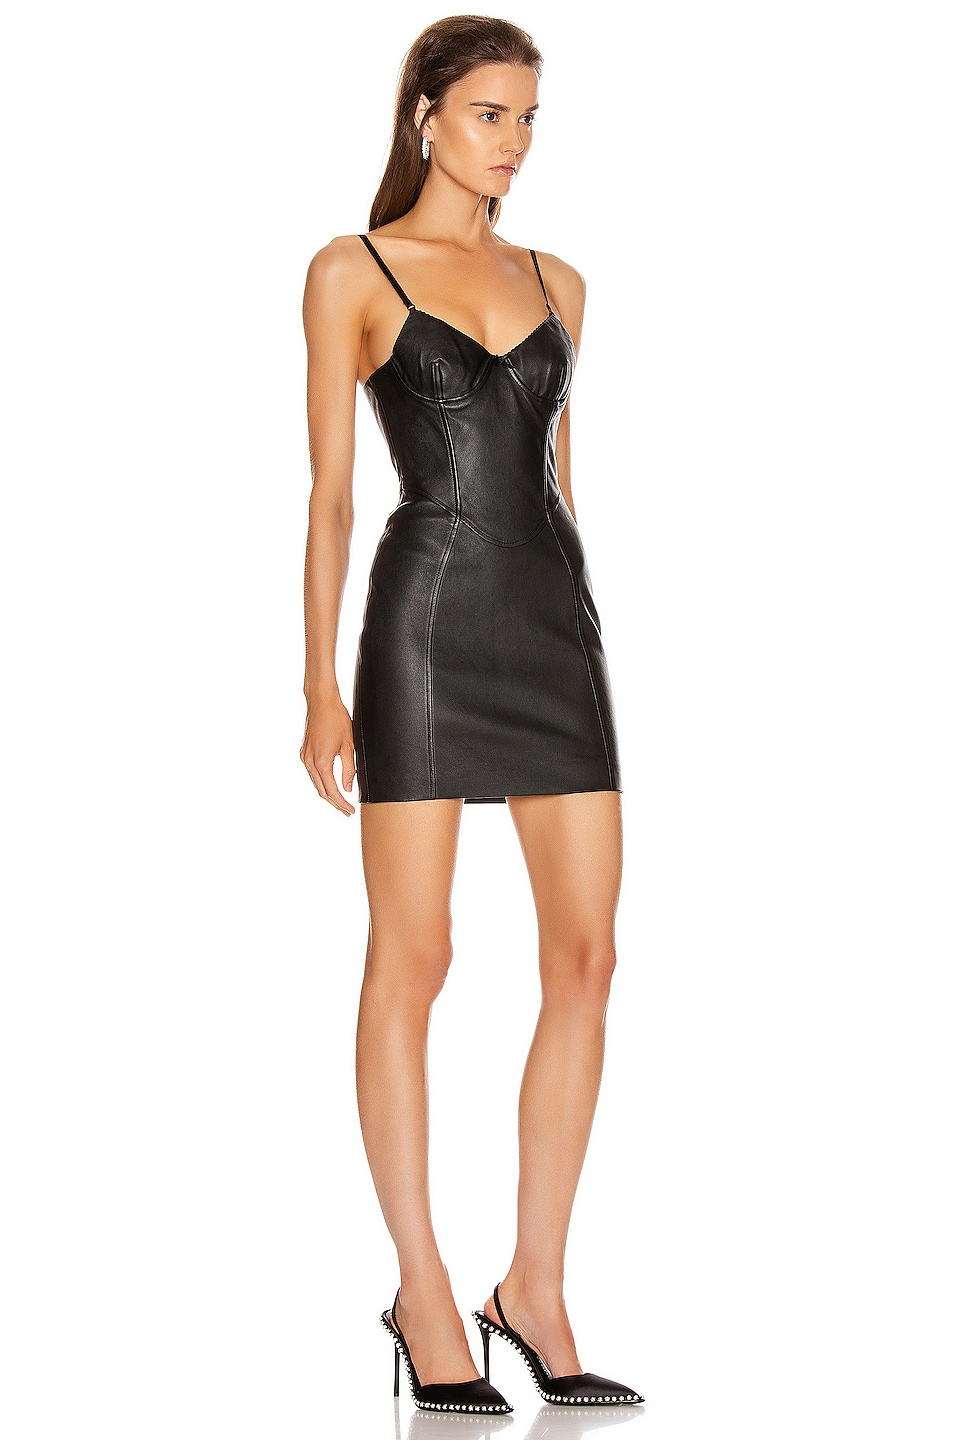 Image 2 of Alexander Wang Stretch Leather Dress in Black